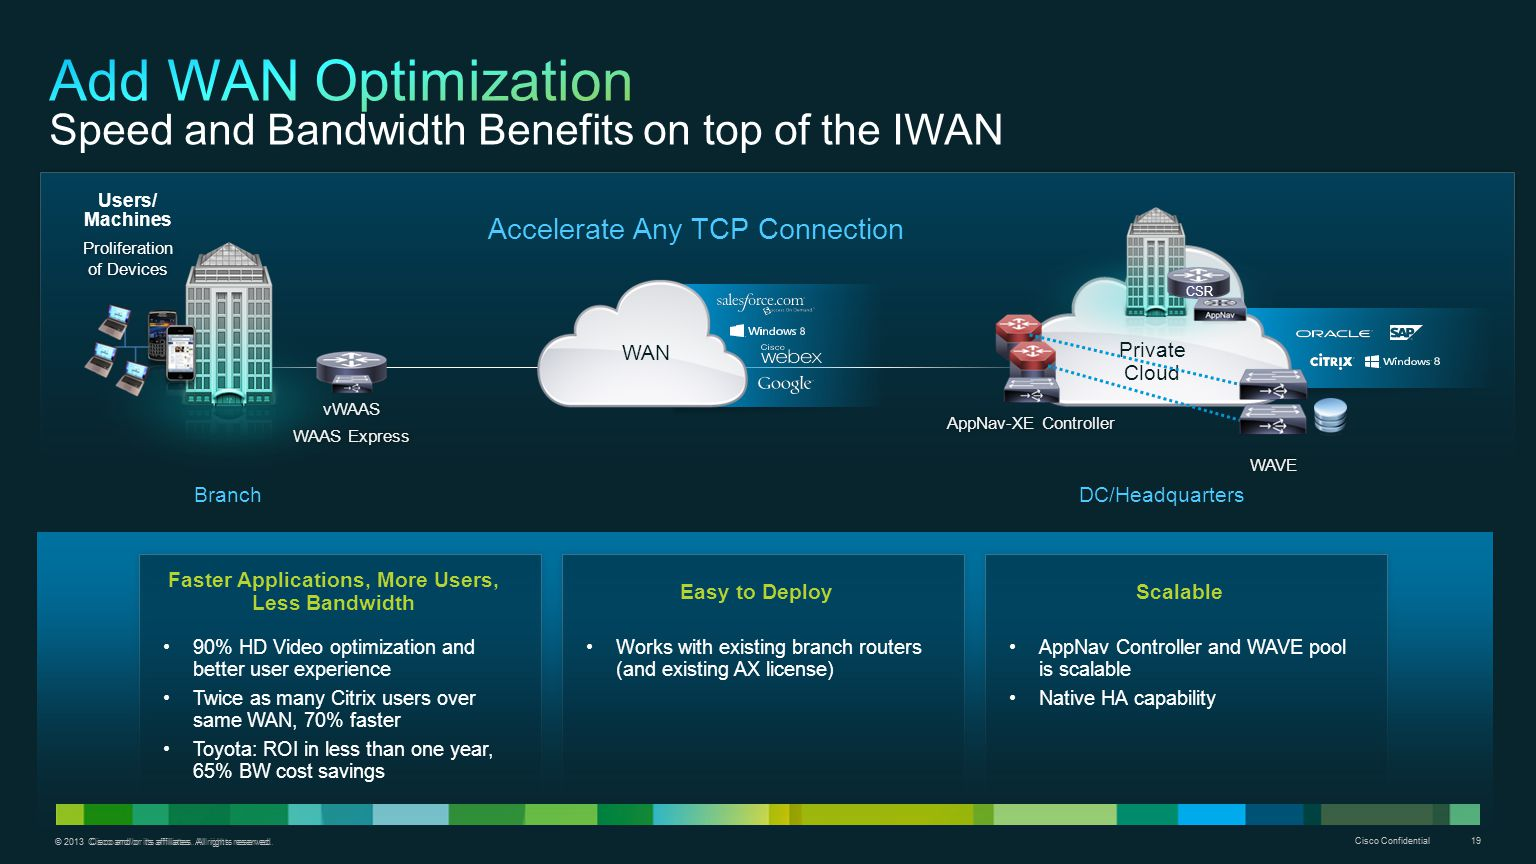 Add WAN Optimization Speed and Bandwidth Benefits on top of the IWAN